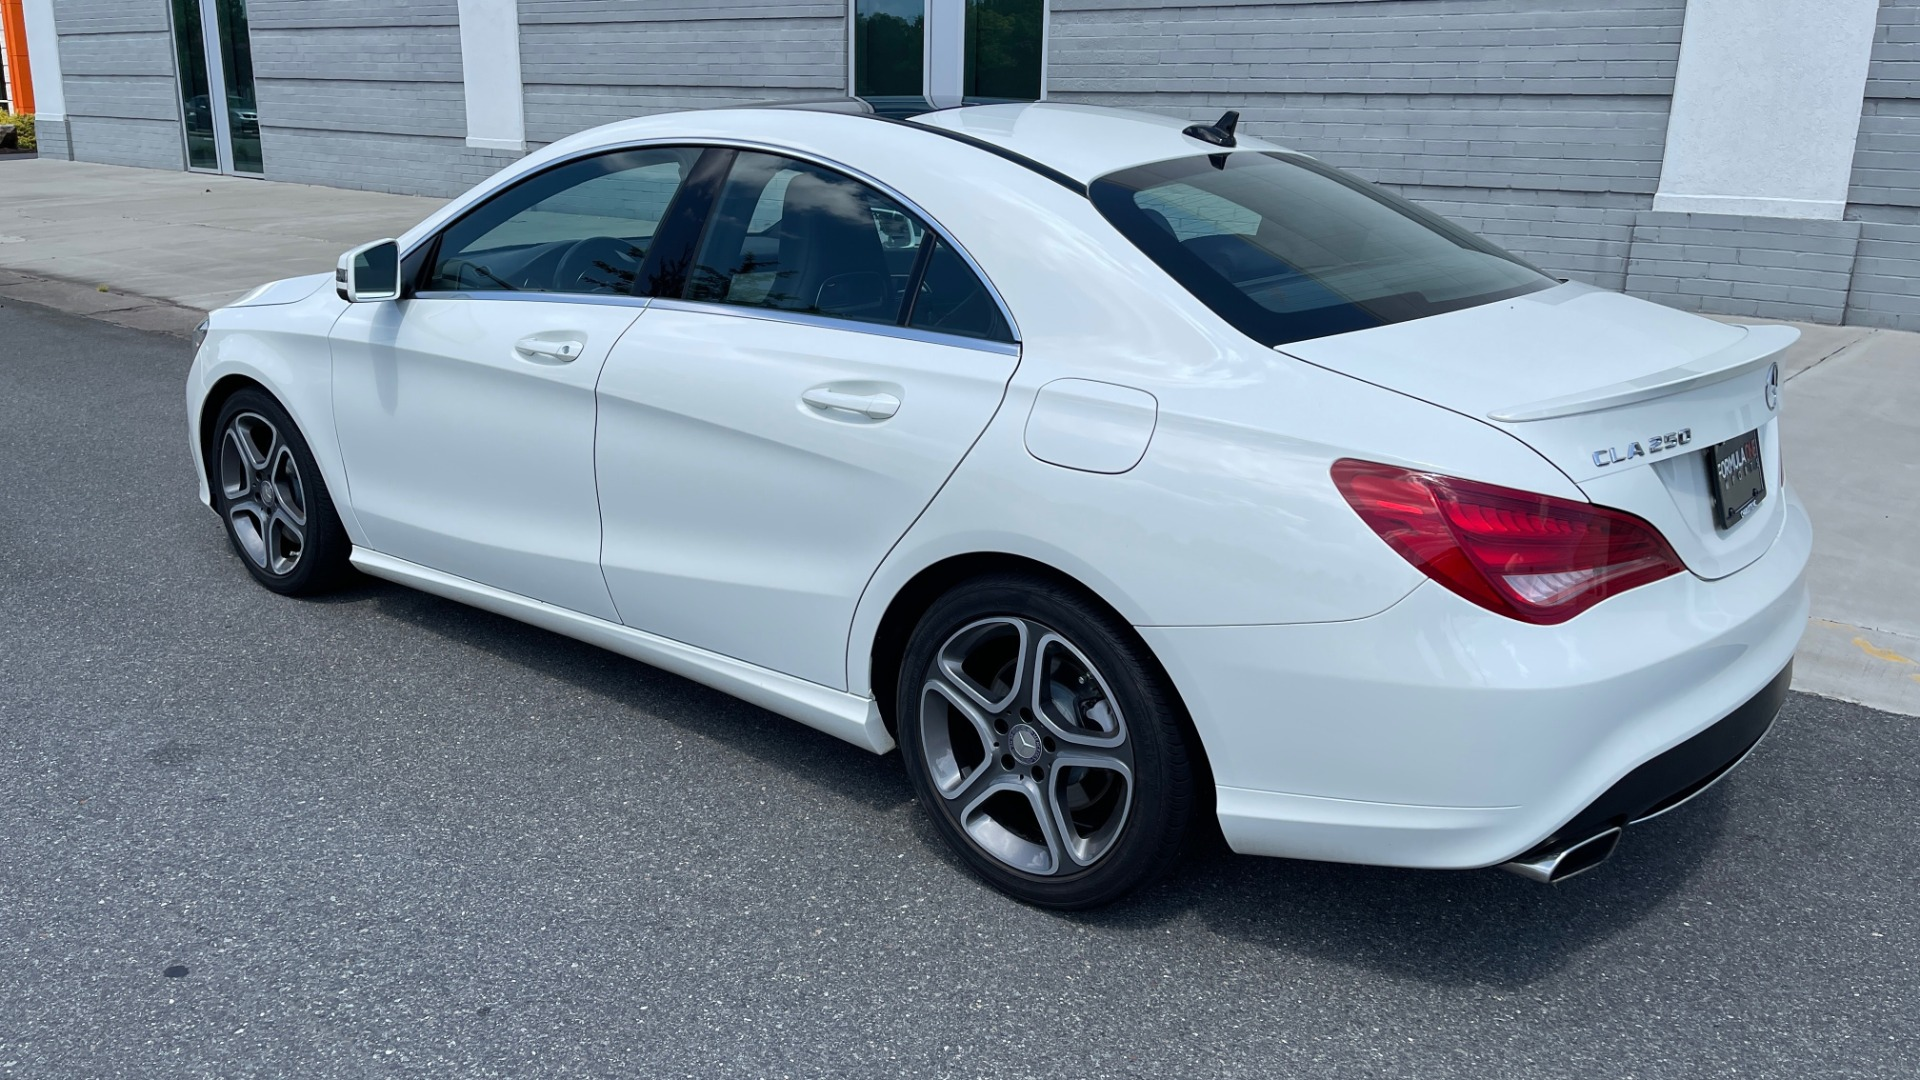 Used 2014 Mercedes-Benz CLA-Class 250 PREMIUM / NAV / MULTIMEDIA PKG / PANO-ROOF / REARVIEW for sale $19,495 at Formula Imports in Charlotte NC 28227 5